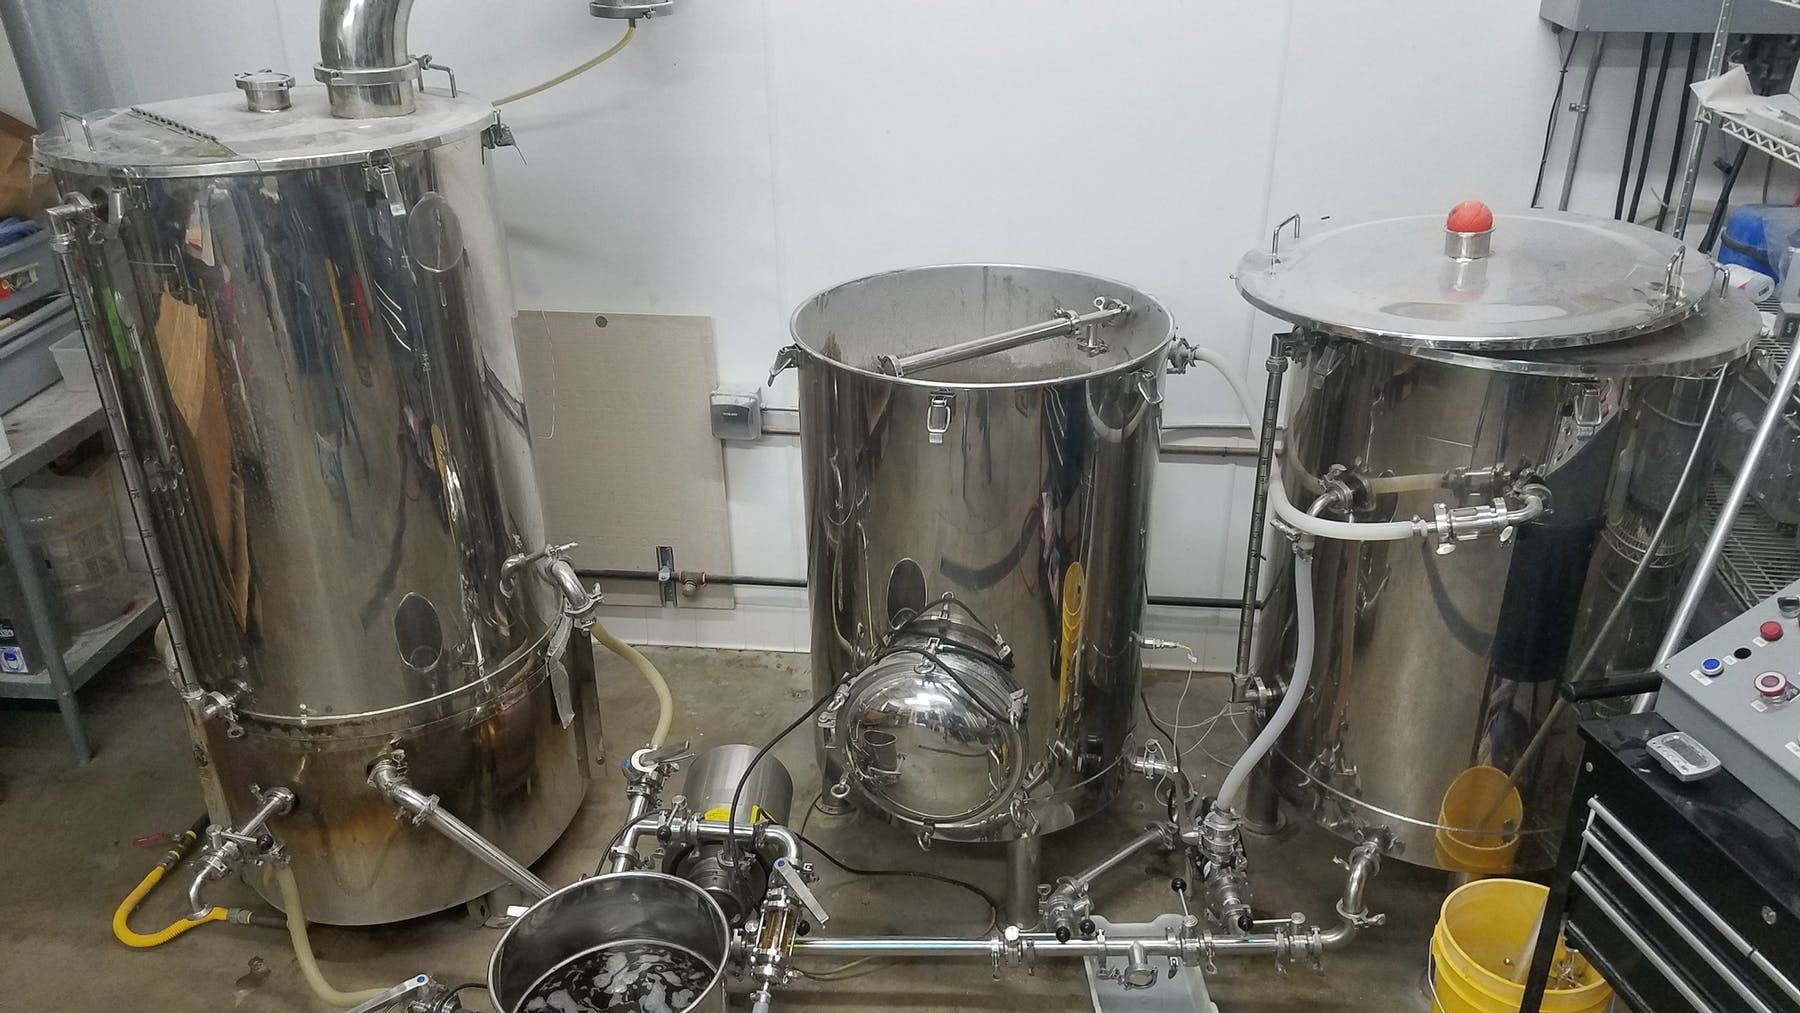 3bbl brewhouse used to open The Valley's Brewery